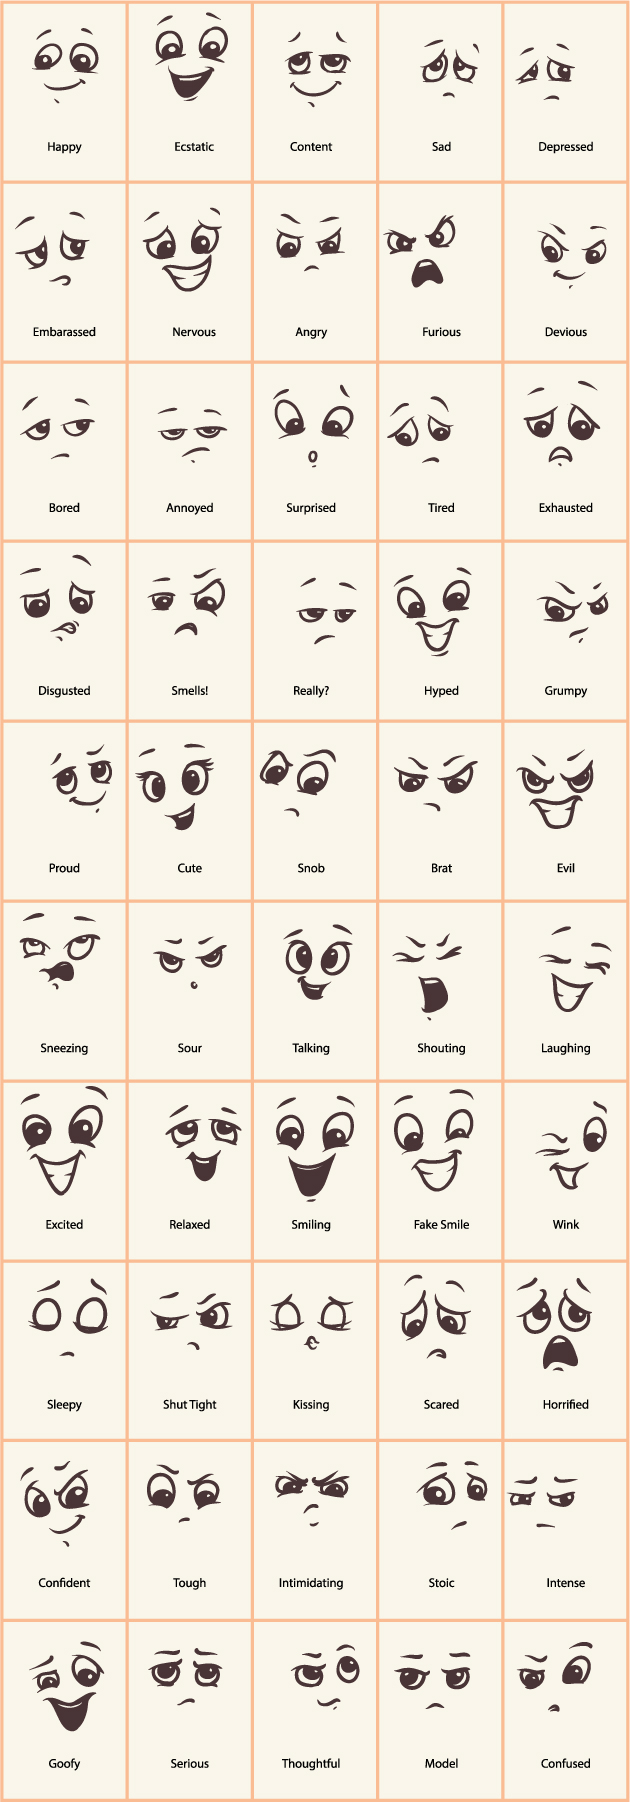 how to draw a cool smiley face